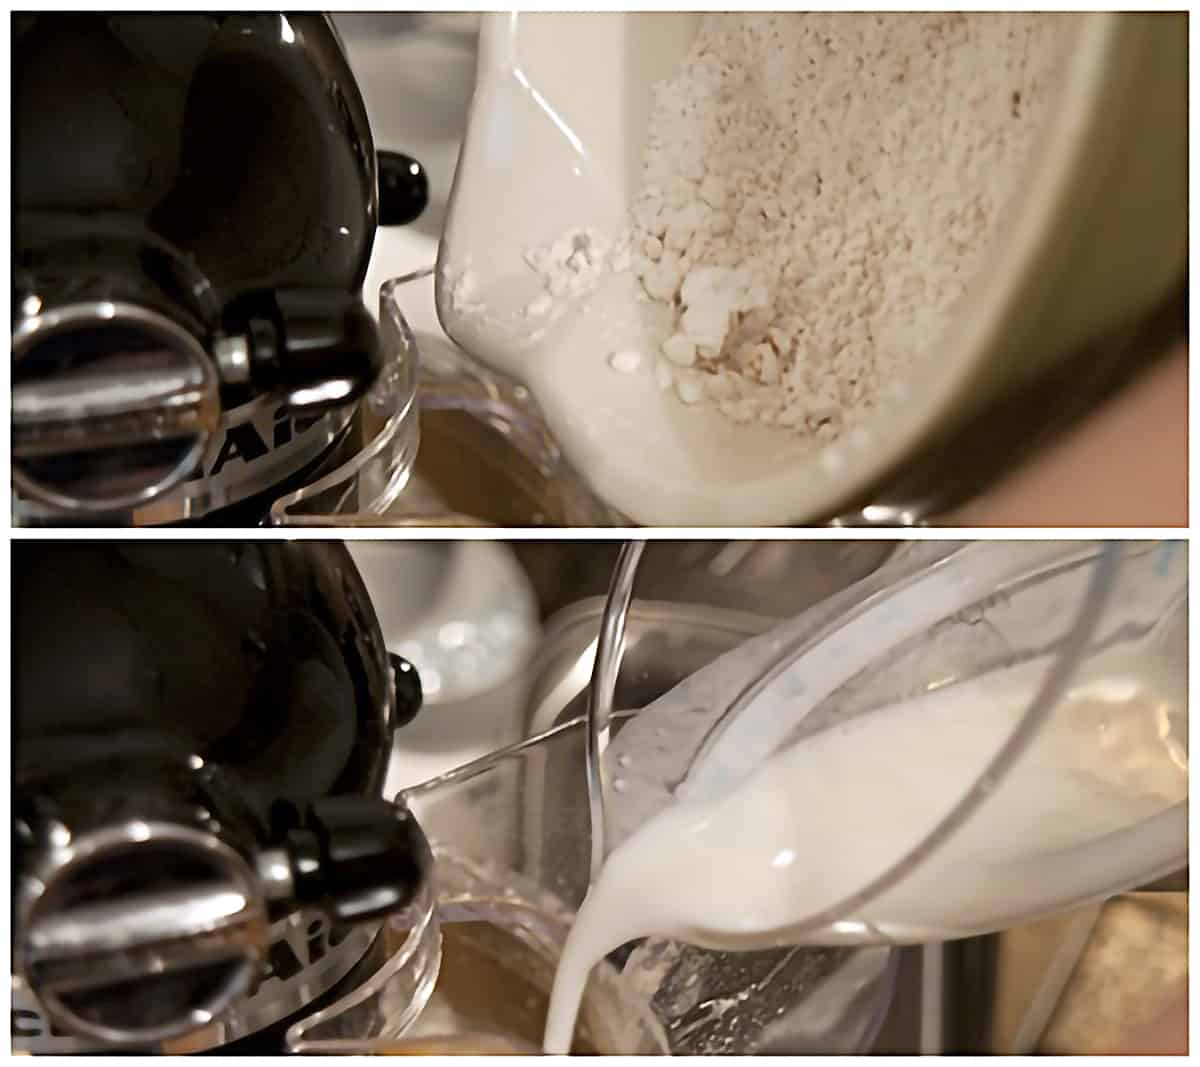 Top: Flour being added to the running mixer; Bottom: Buttermilk being added to the running mixer